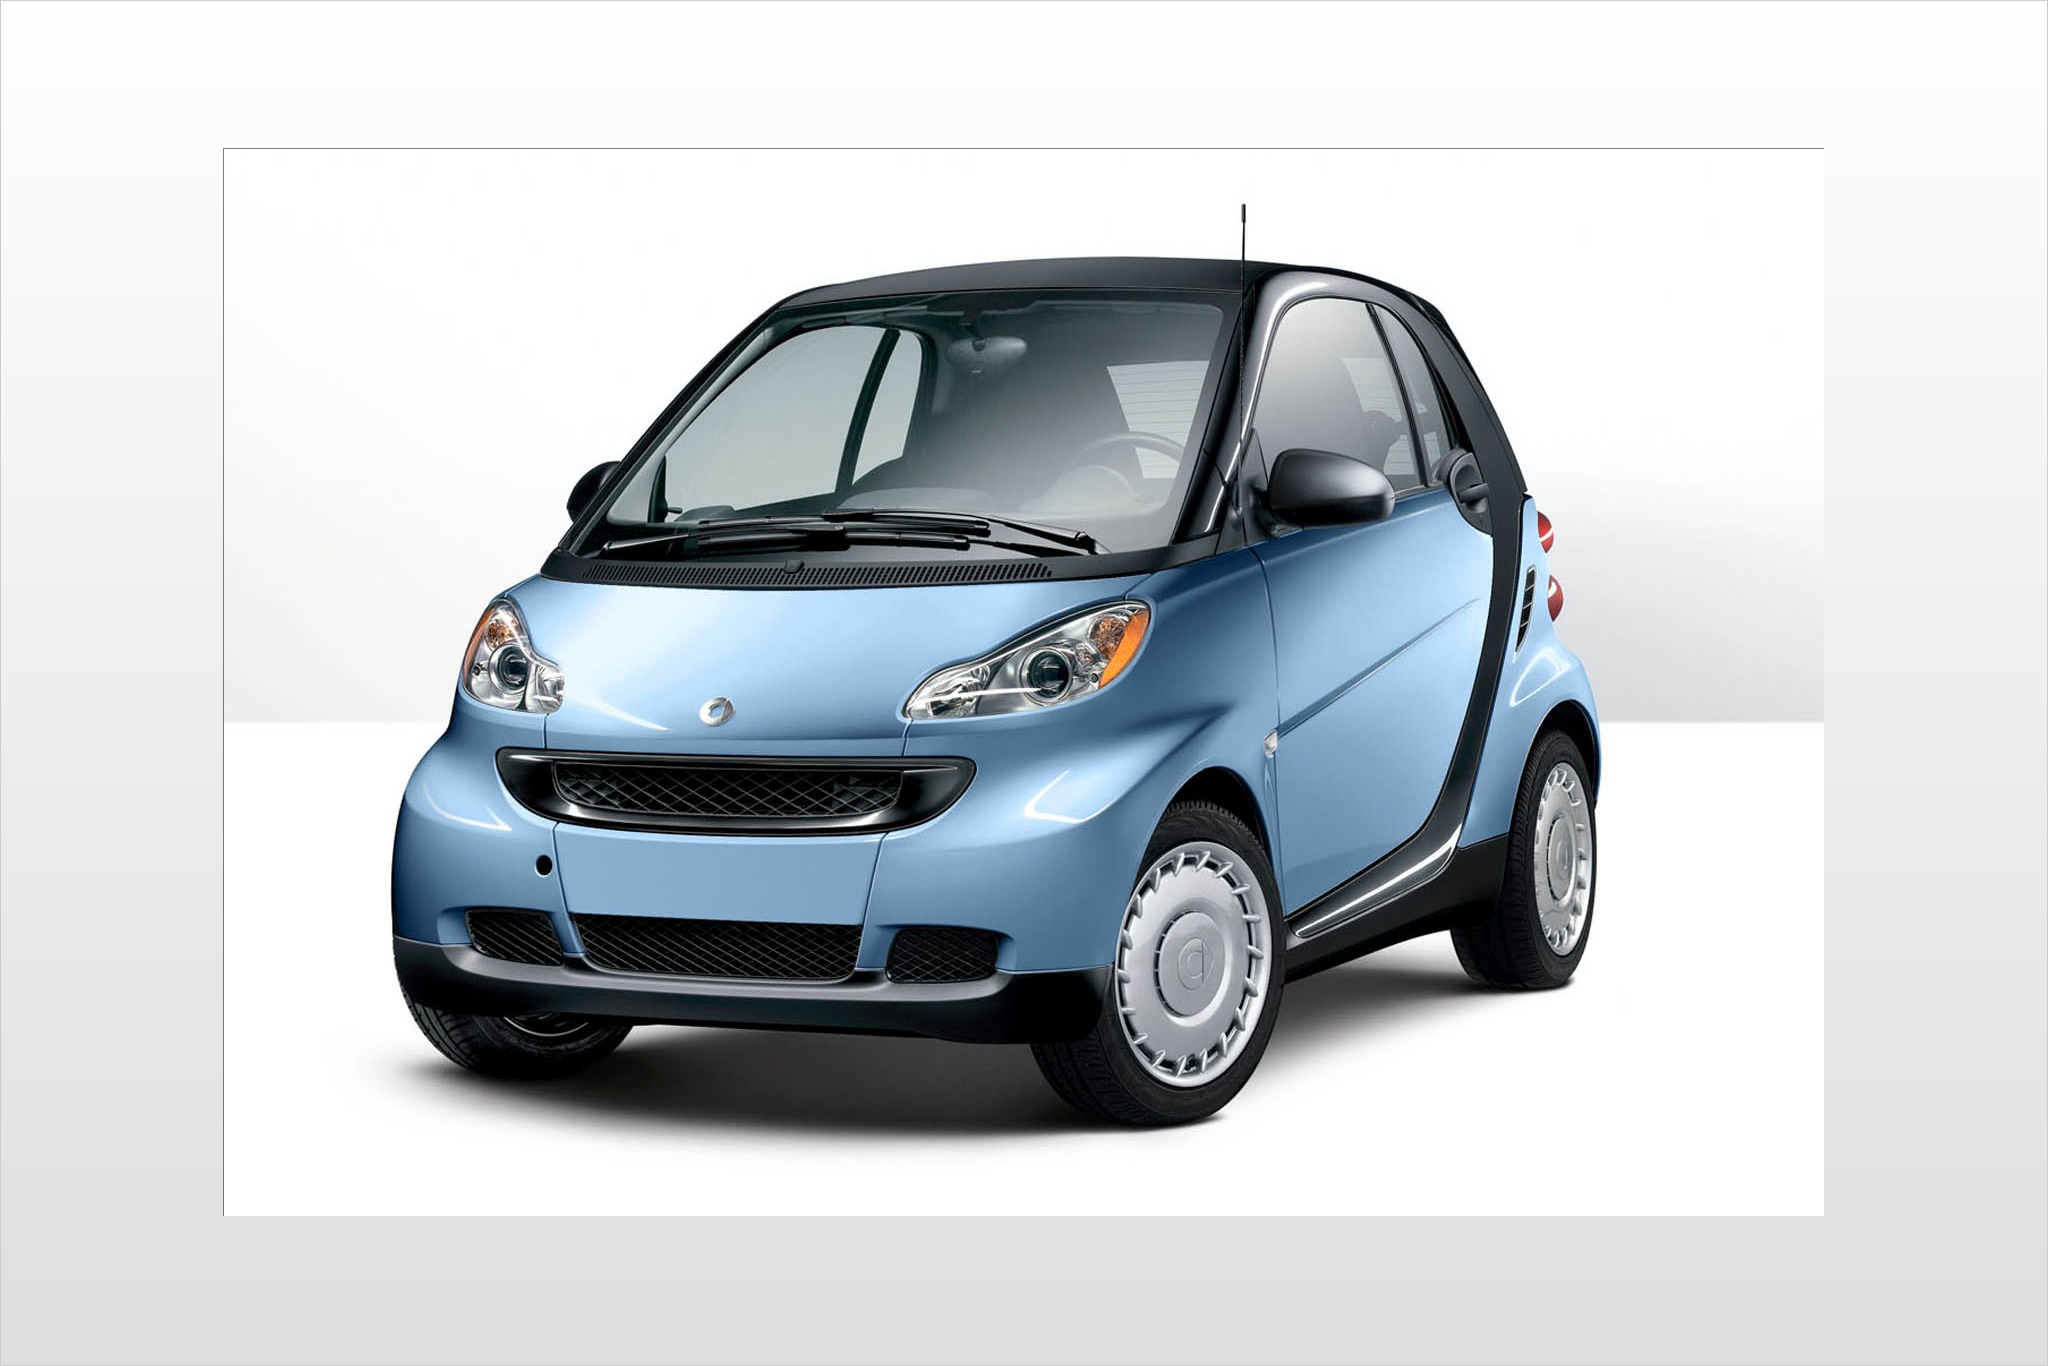 2012 smart fortwo 2dr Hat exterior #2